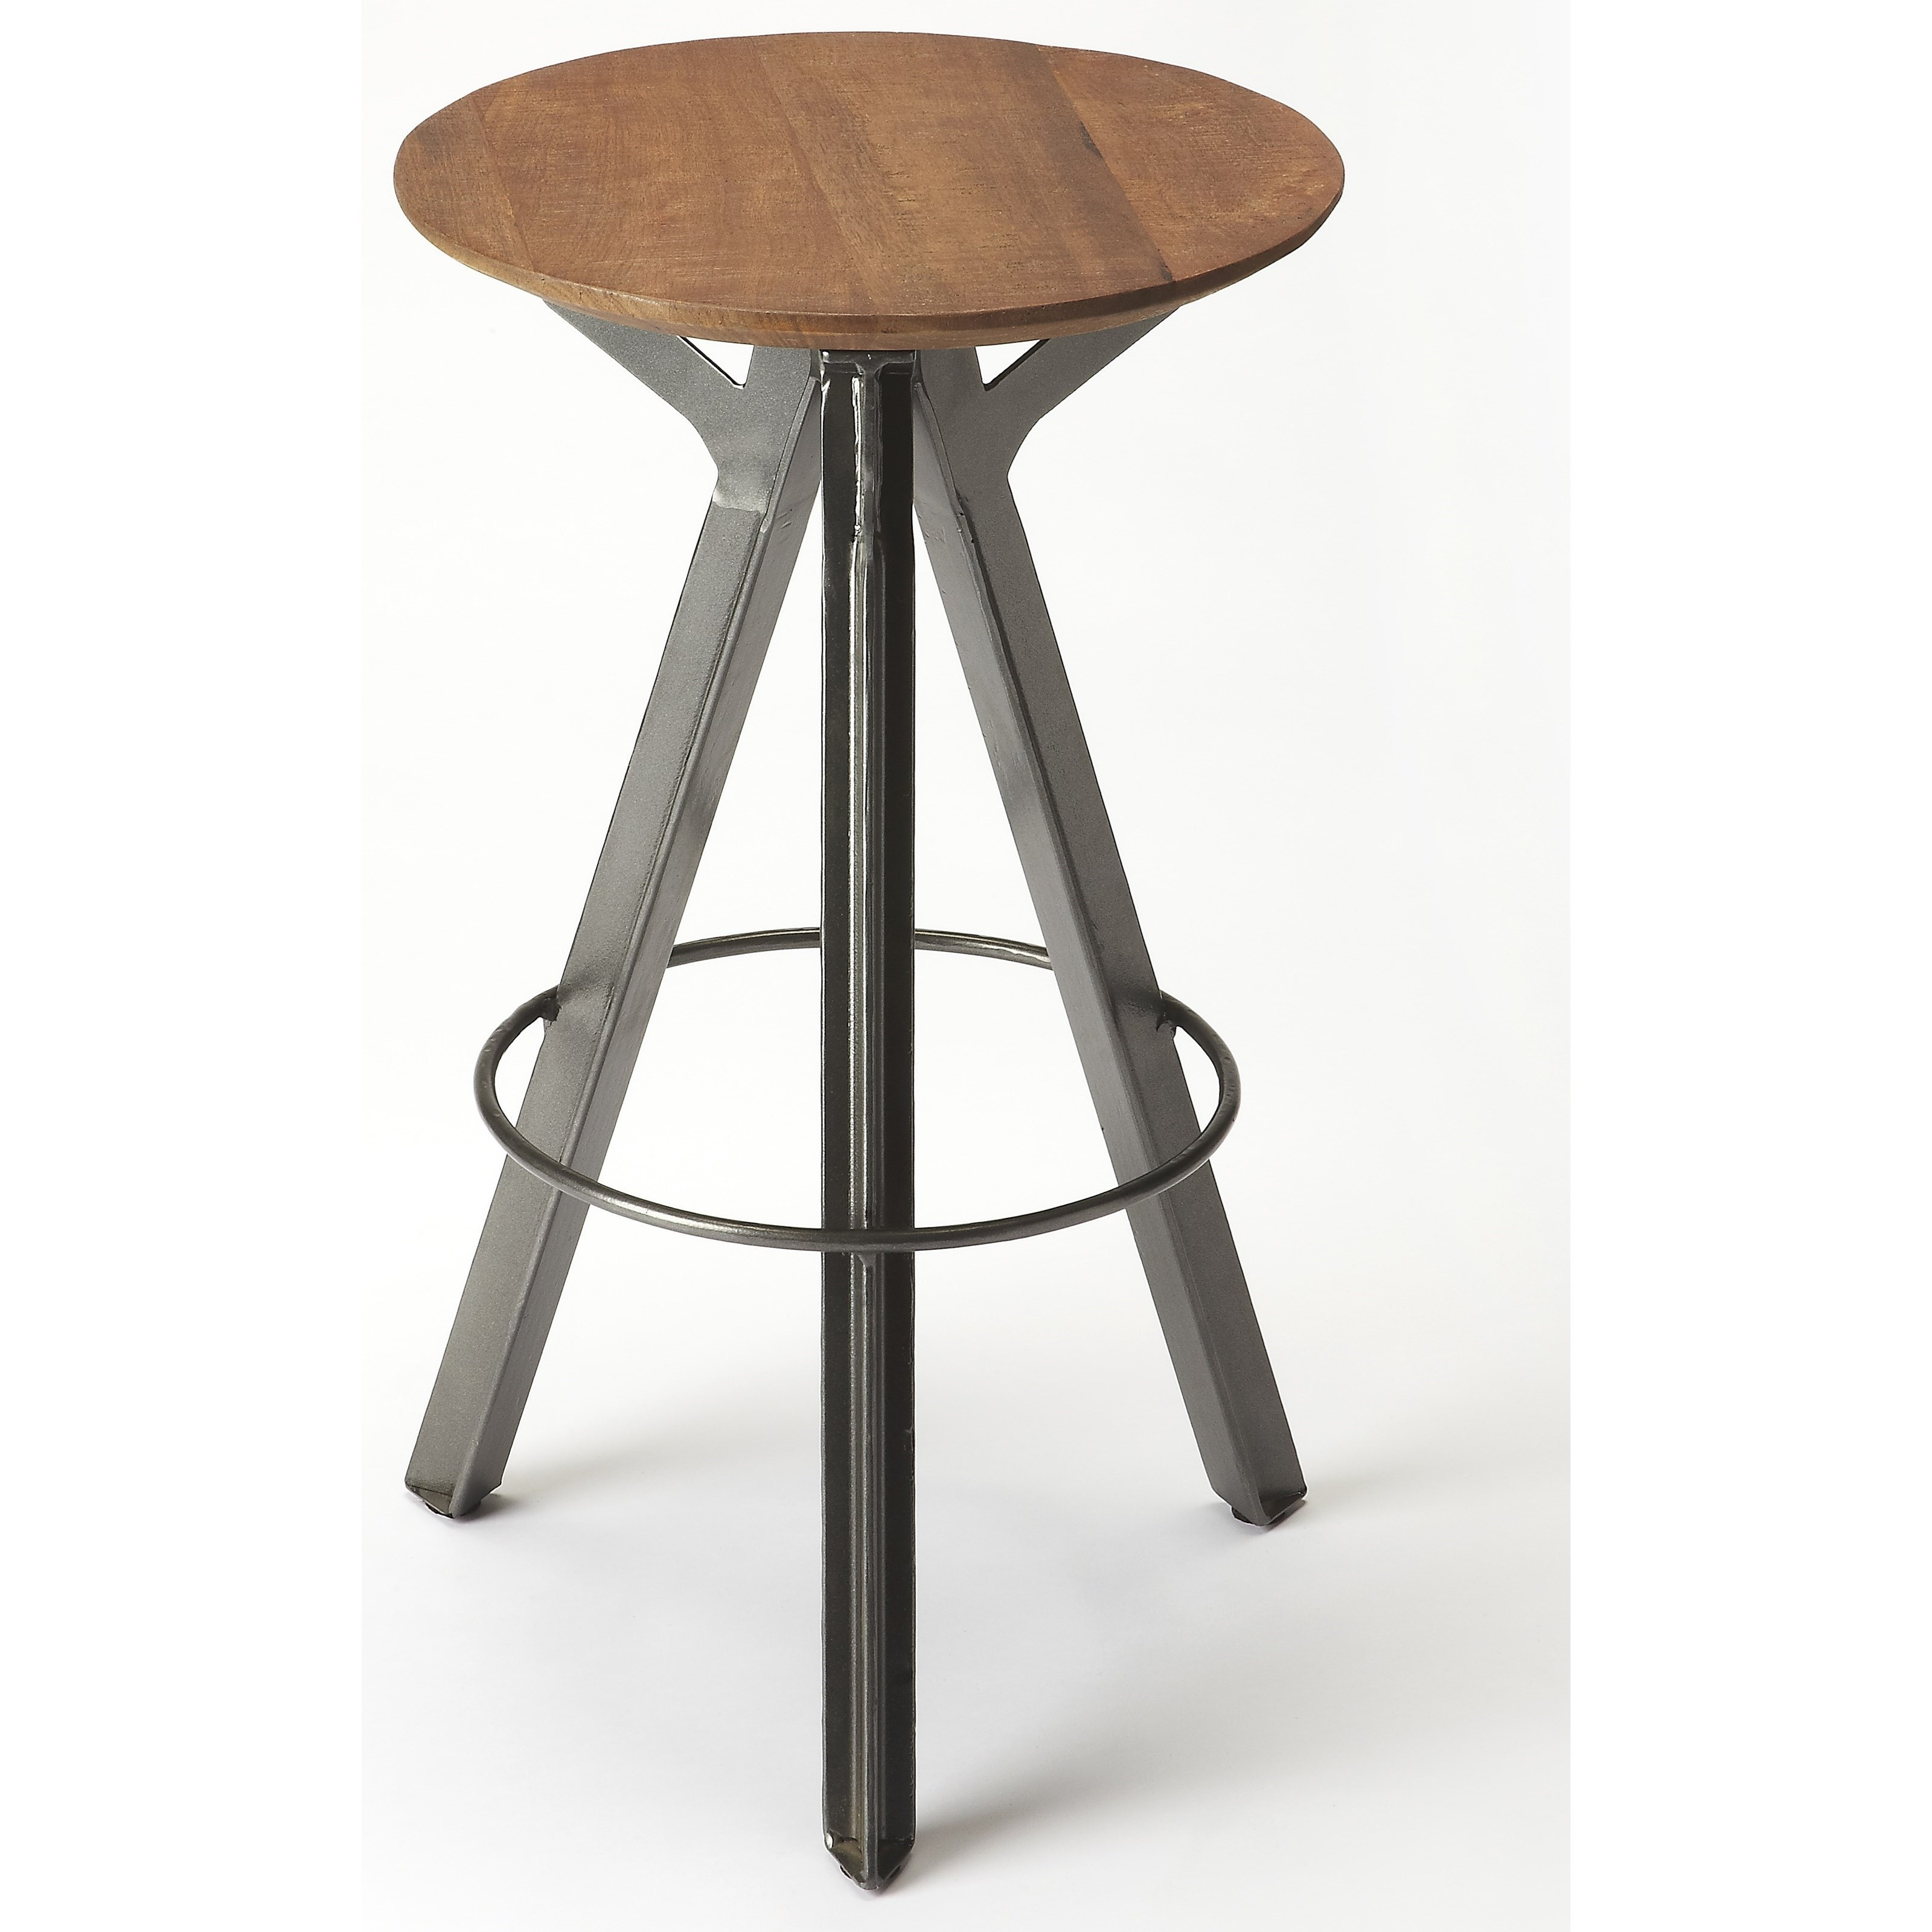 Butler Specialty Company Industrial Chic Bar Stool - Item Number: 6229330